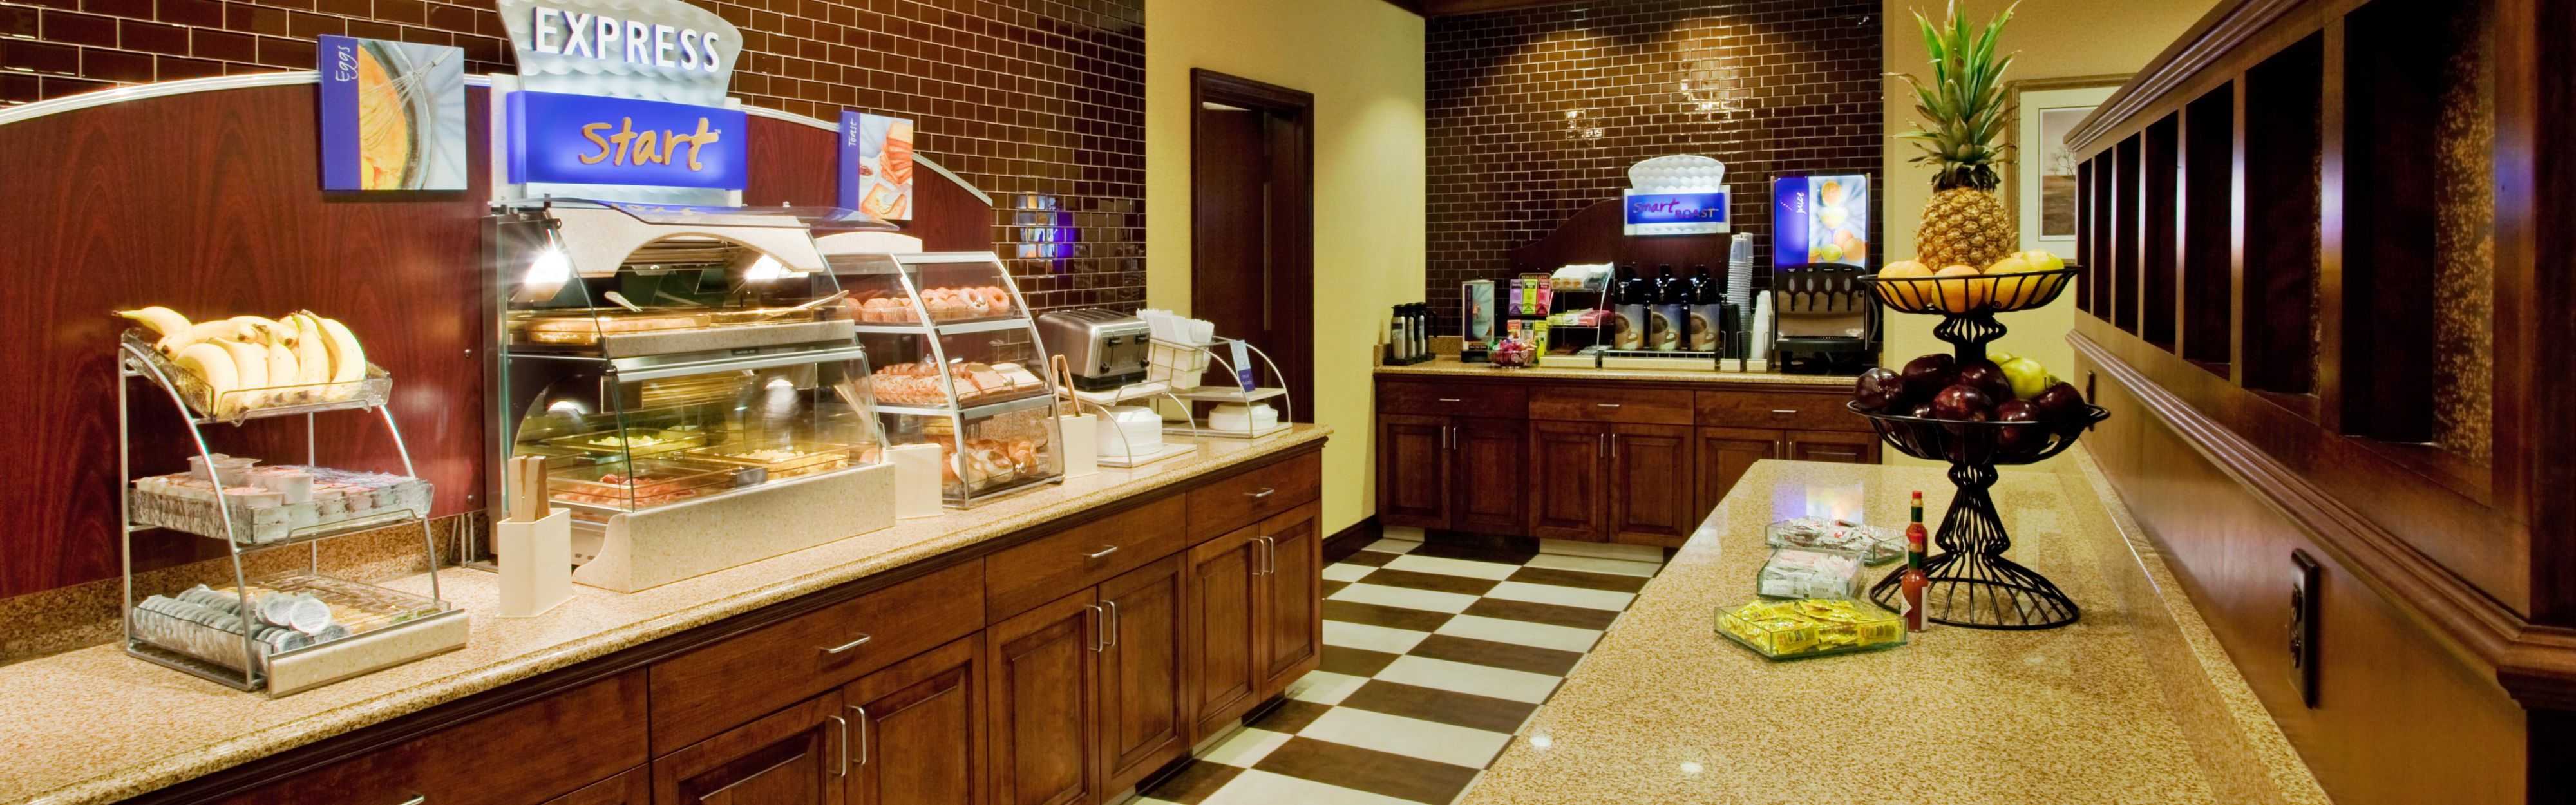 Holiday Inn Express & Suites Wilmington-Newark image 3